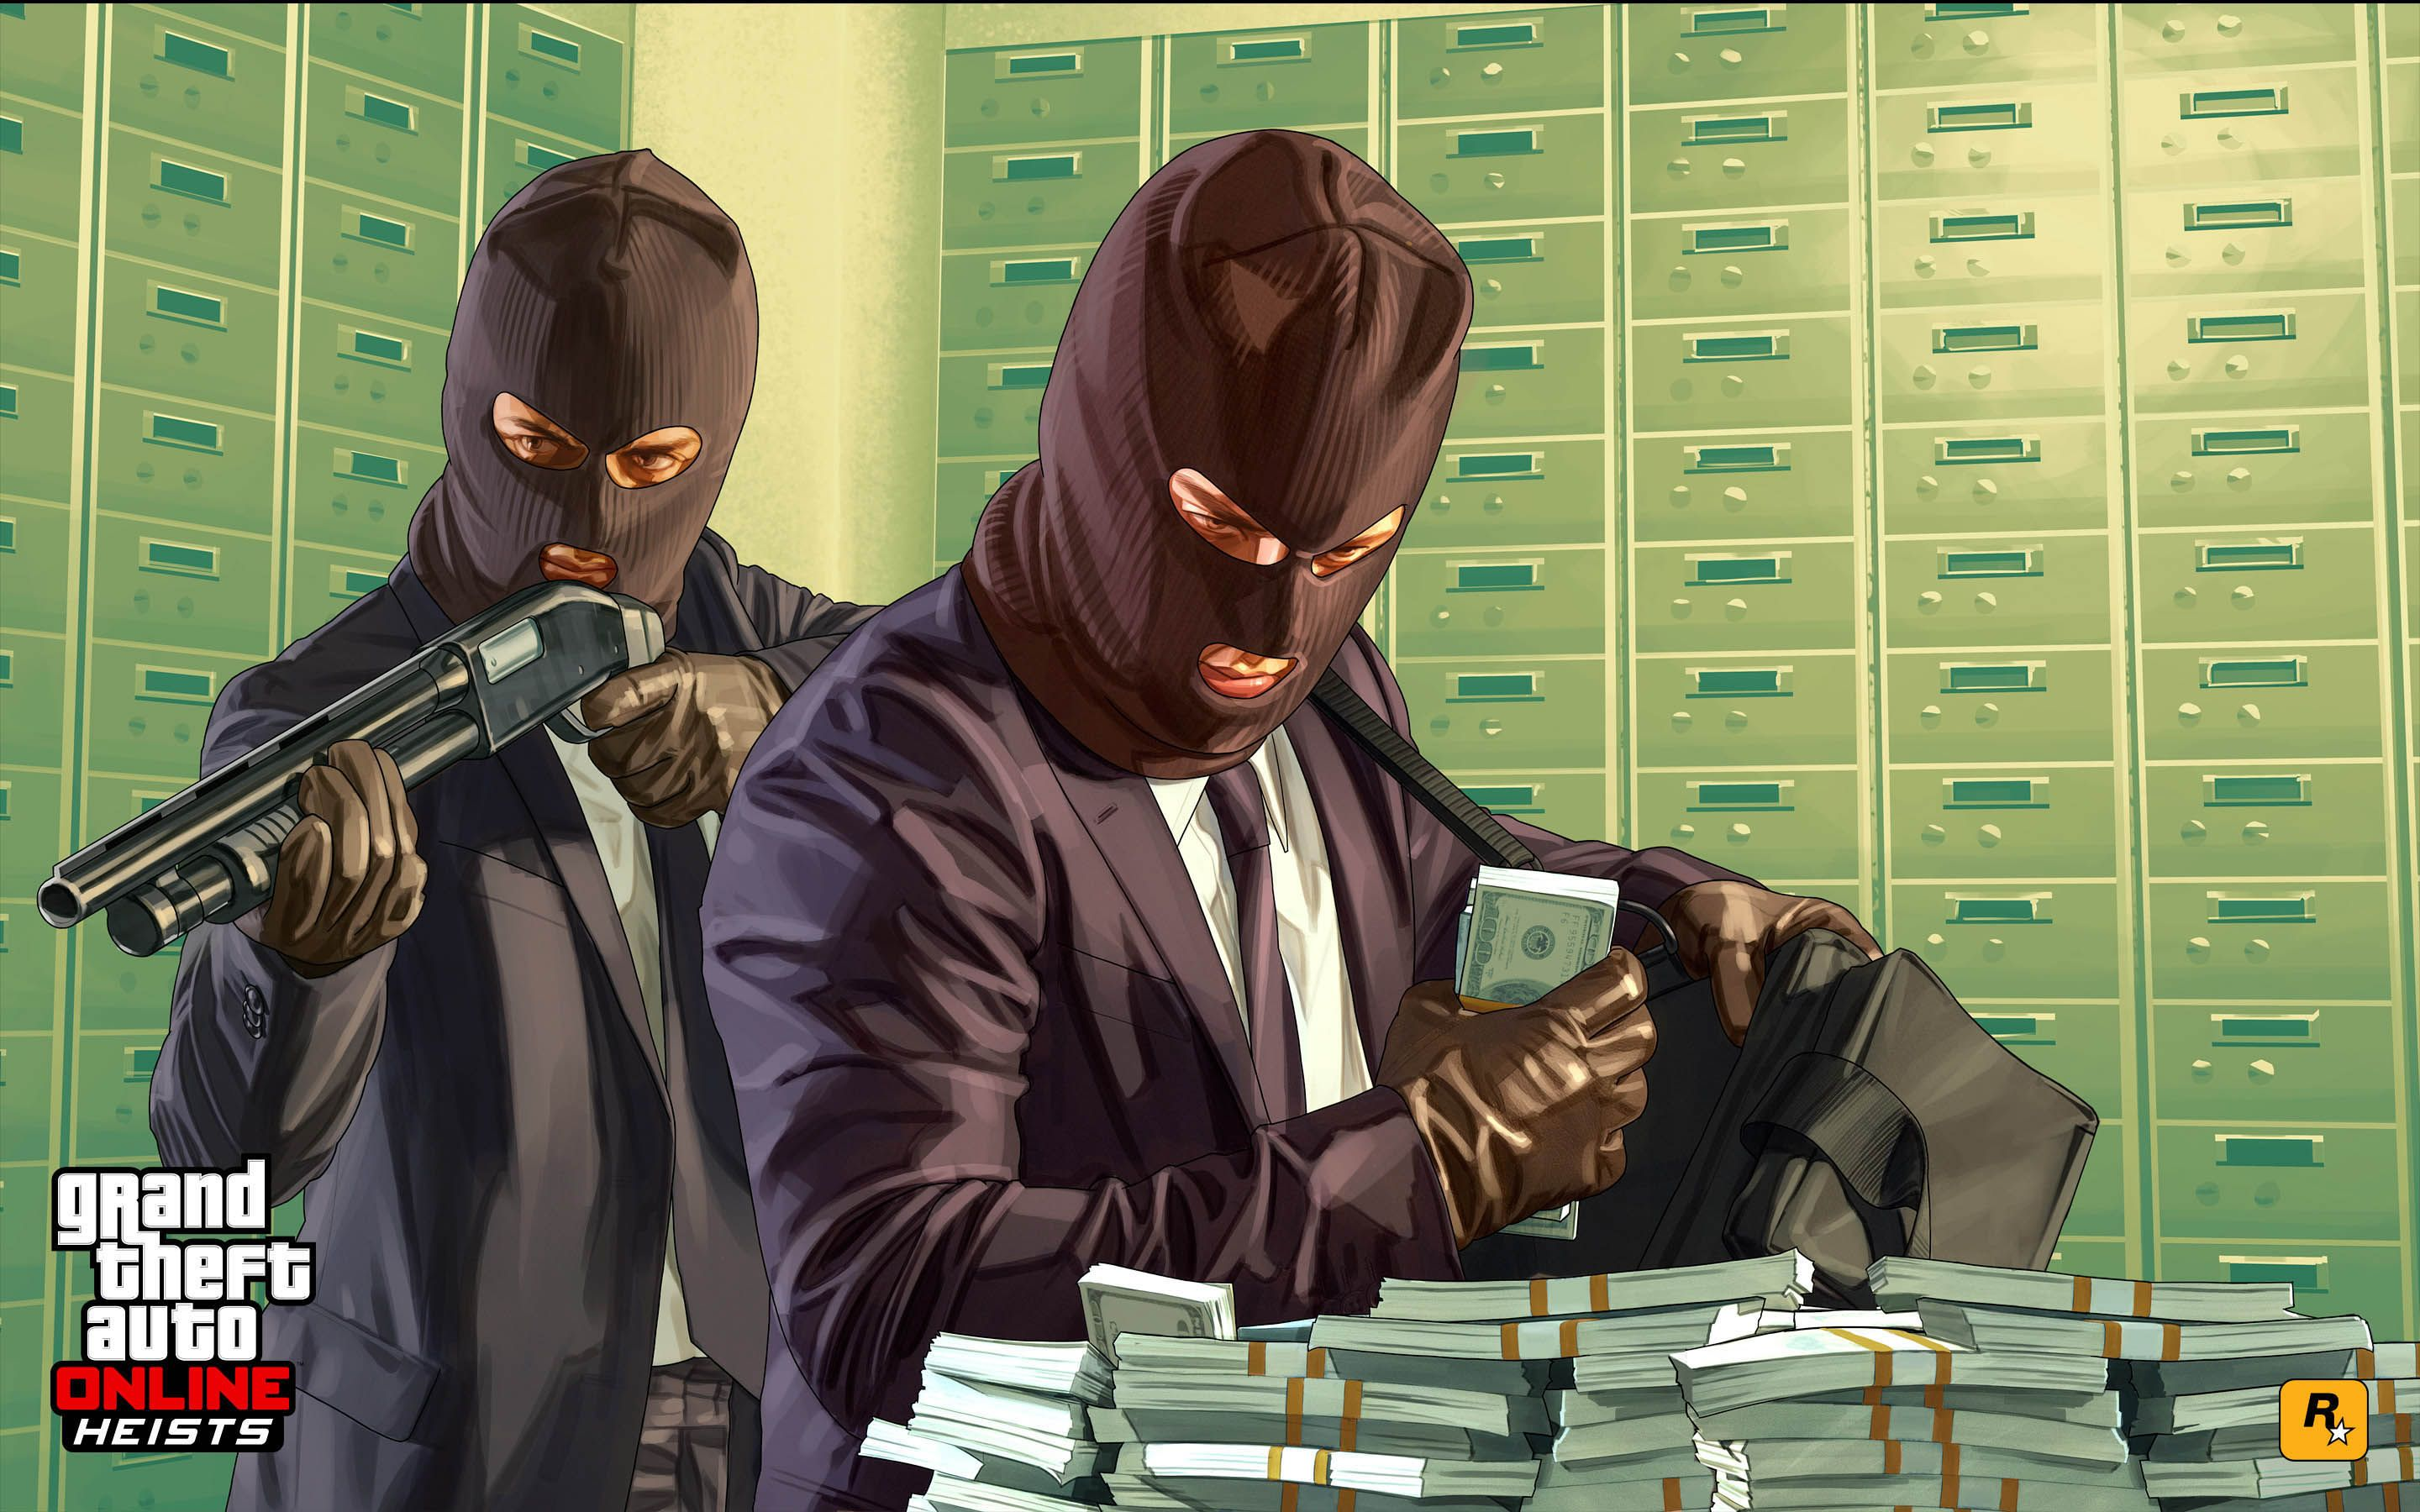 Pics photos grand theft auto iv the law breaking spree continues - Bank Heist Gta 5 Online Update 2880x1800 Wallpaper